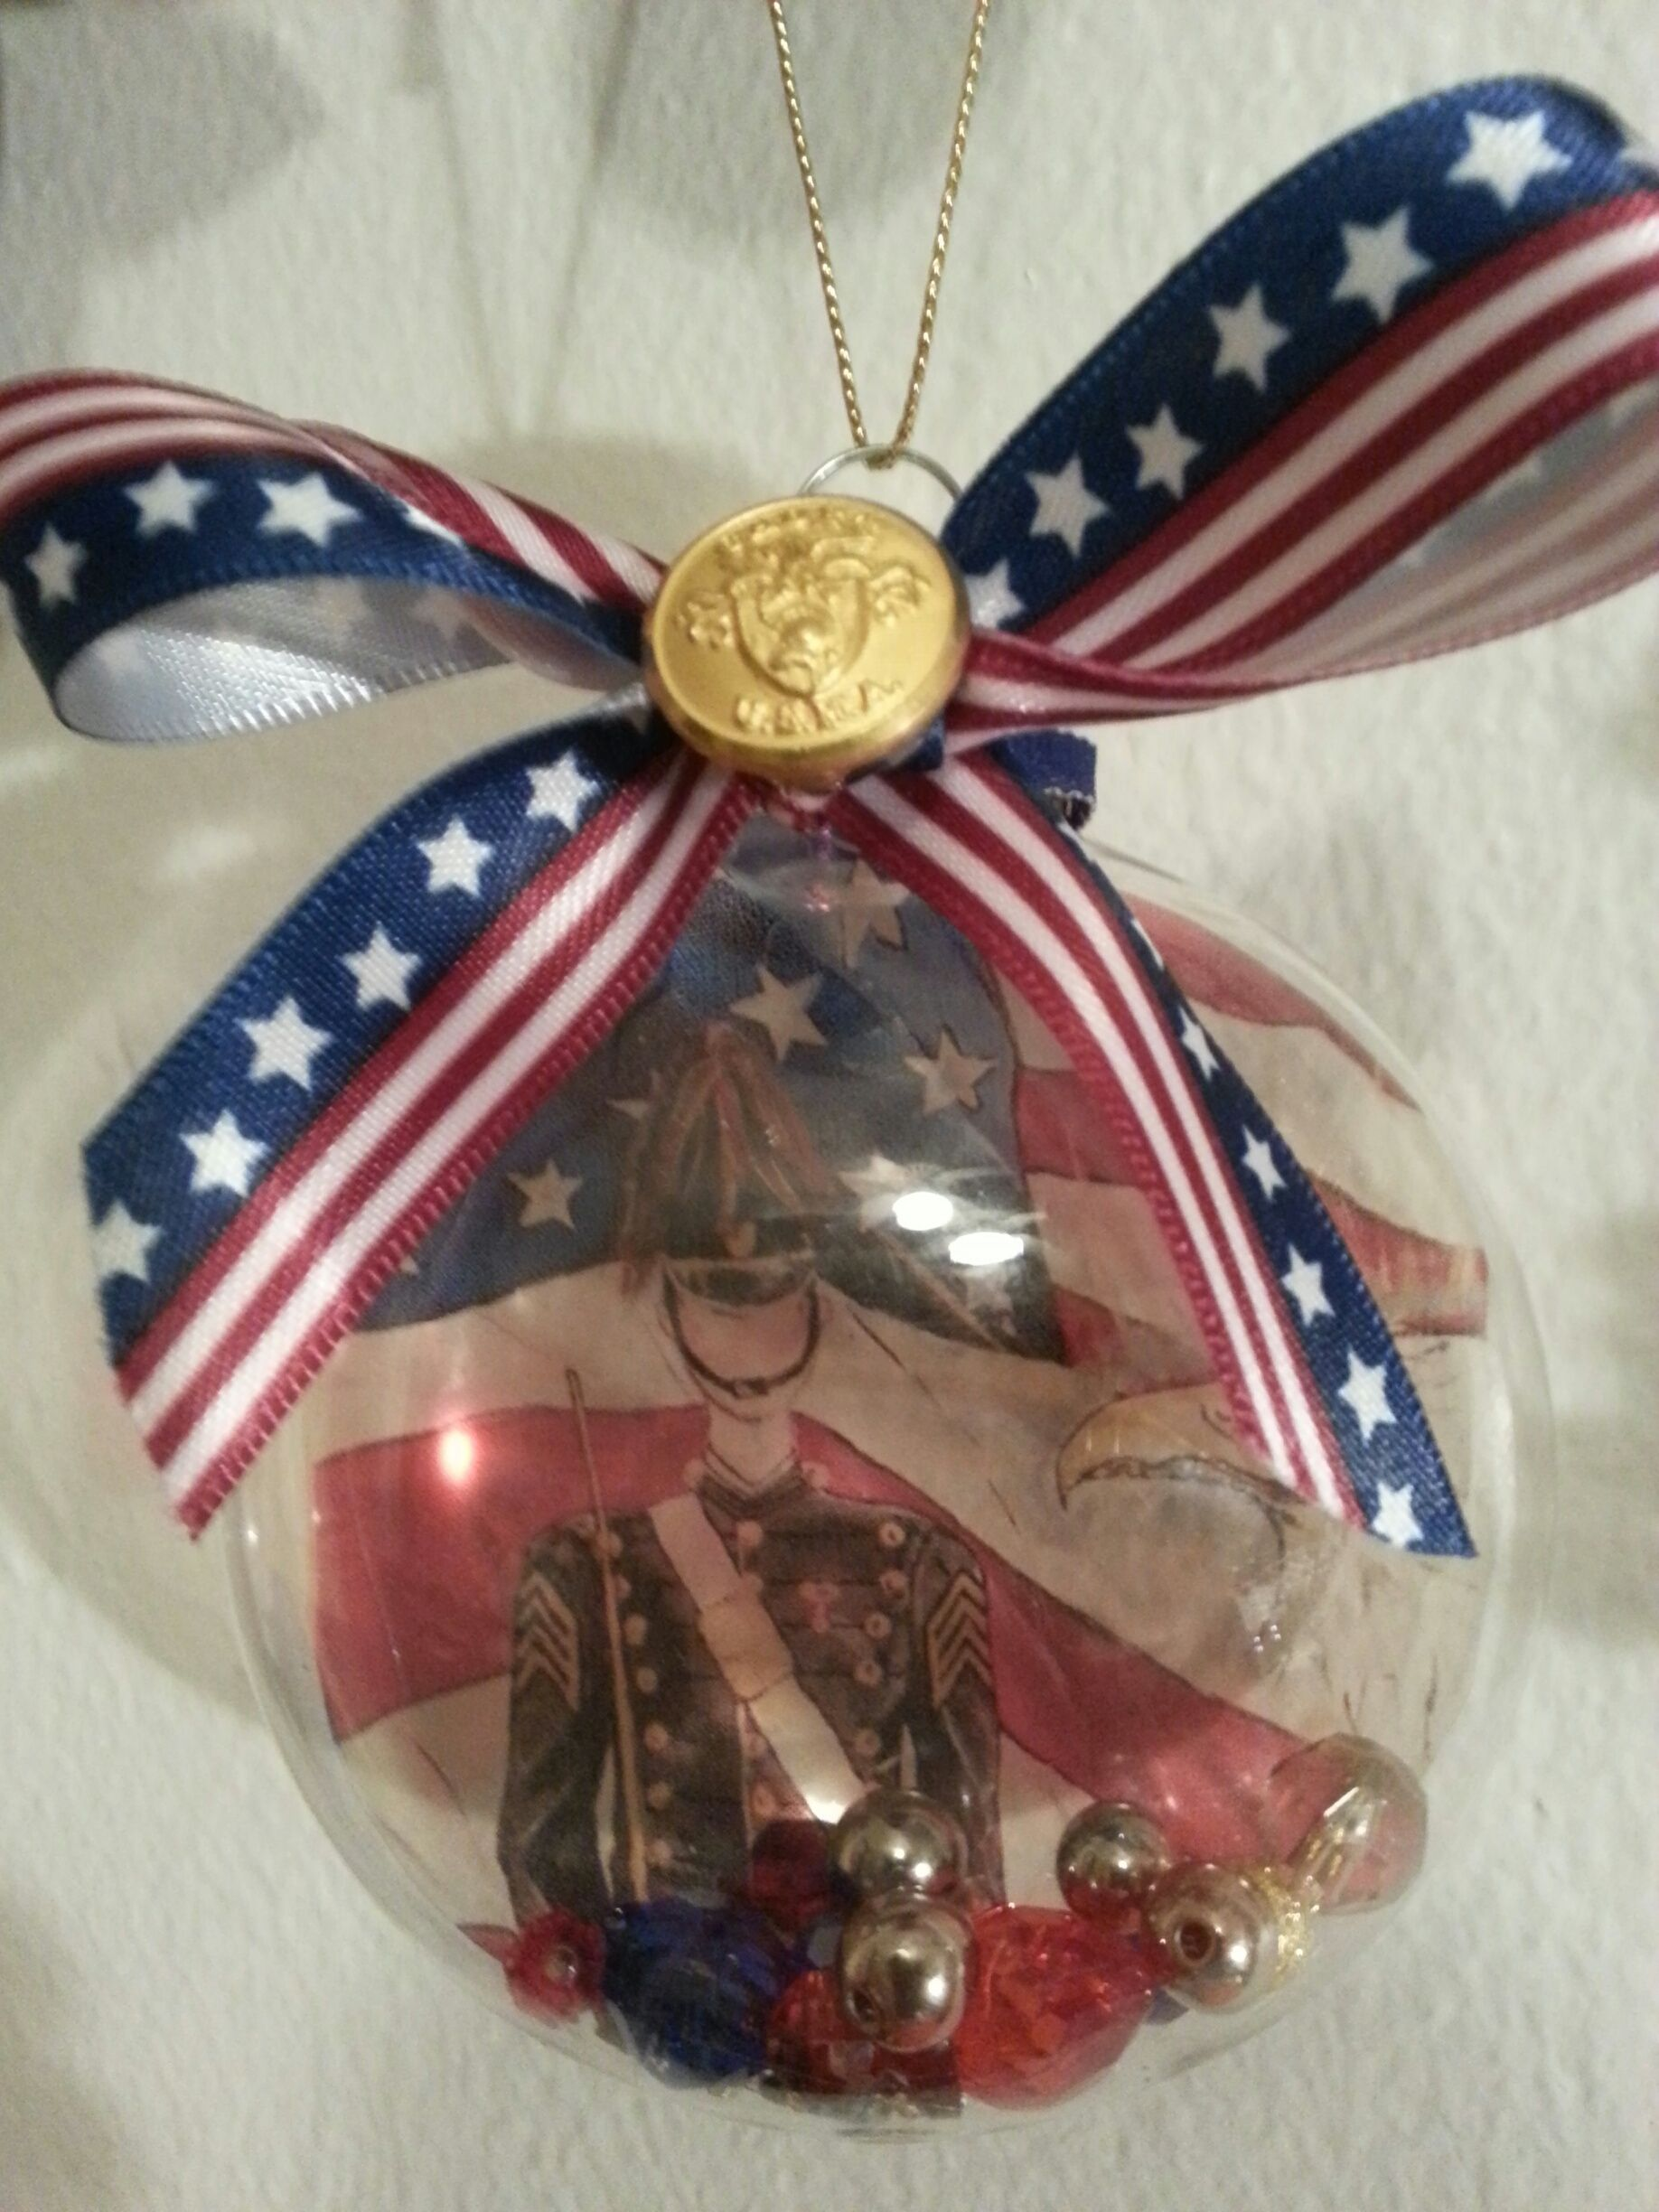 West Point Cadet Christmas Ornament by Ann Morrison. Art by NiCOle ...